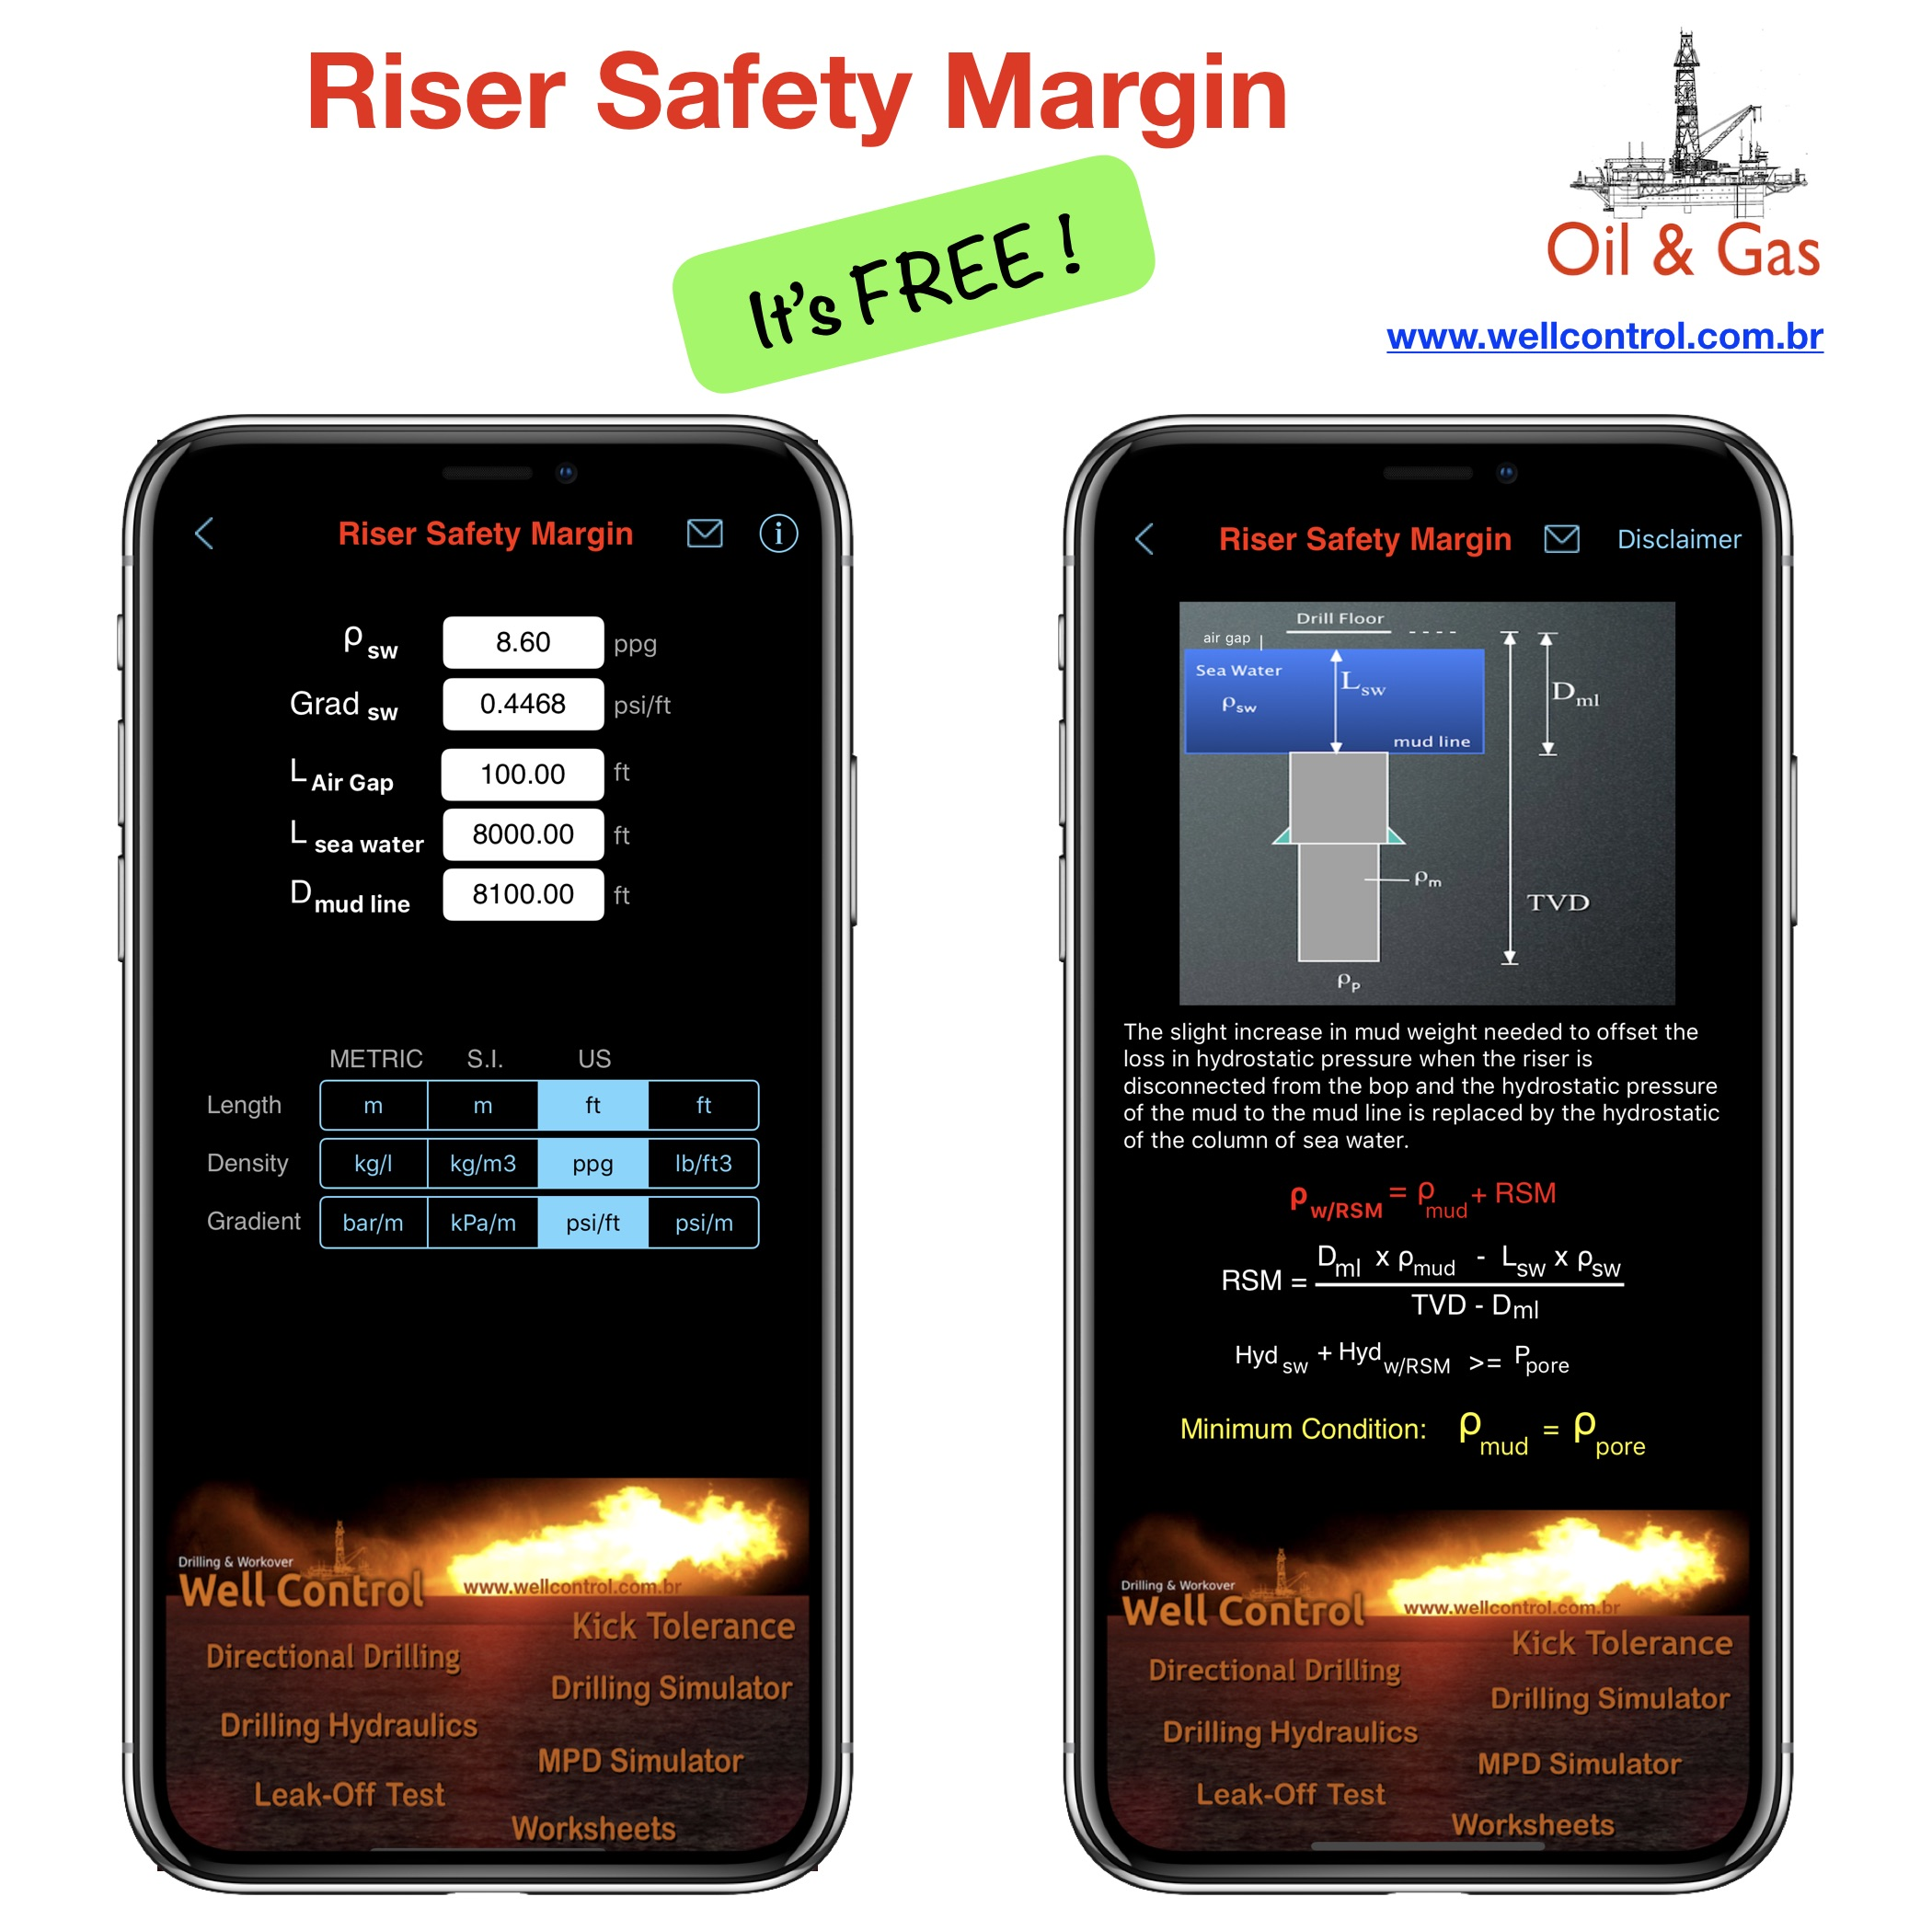 Riser_Safety_Margin_2